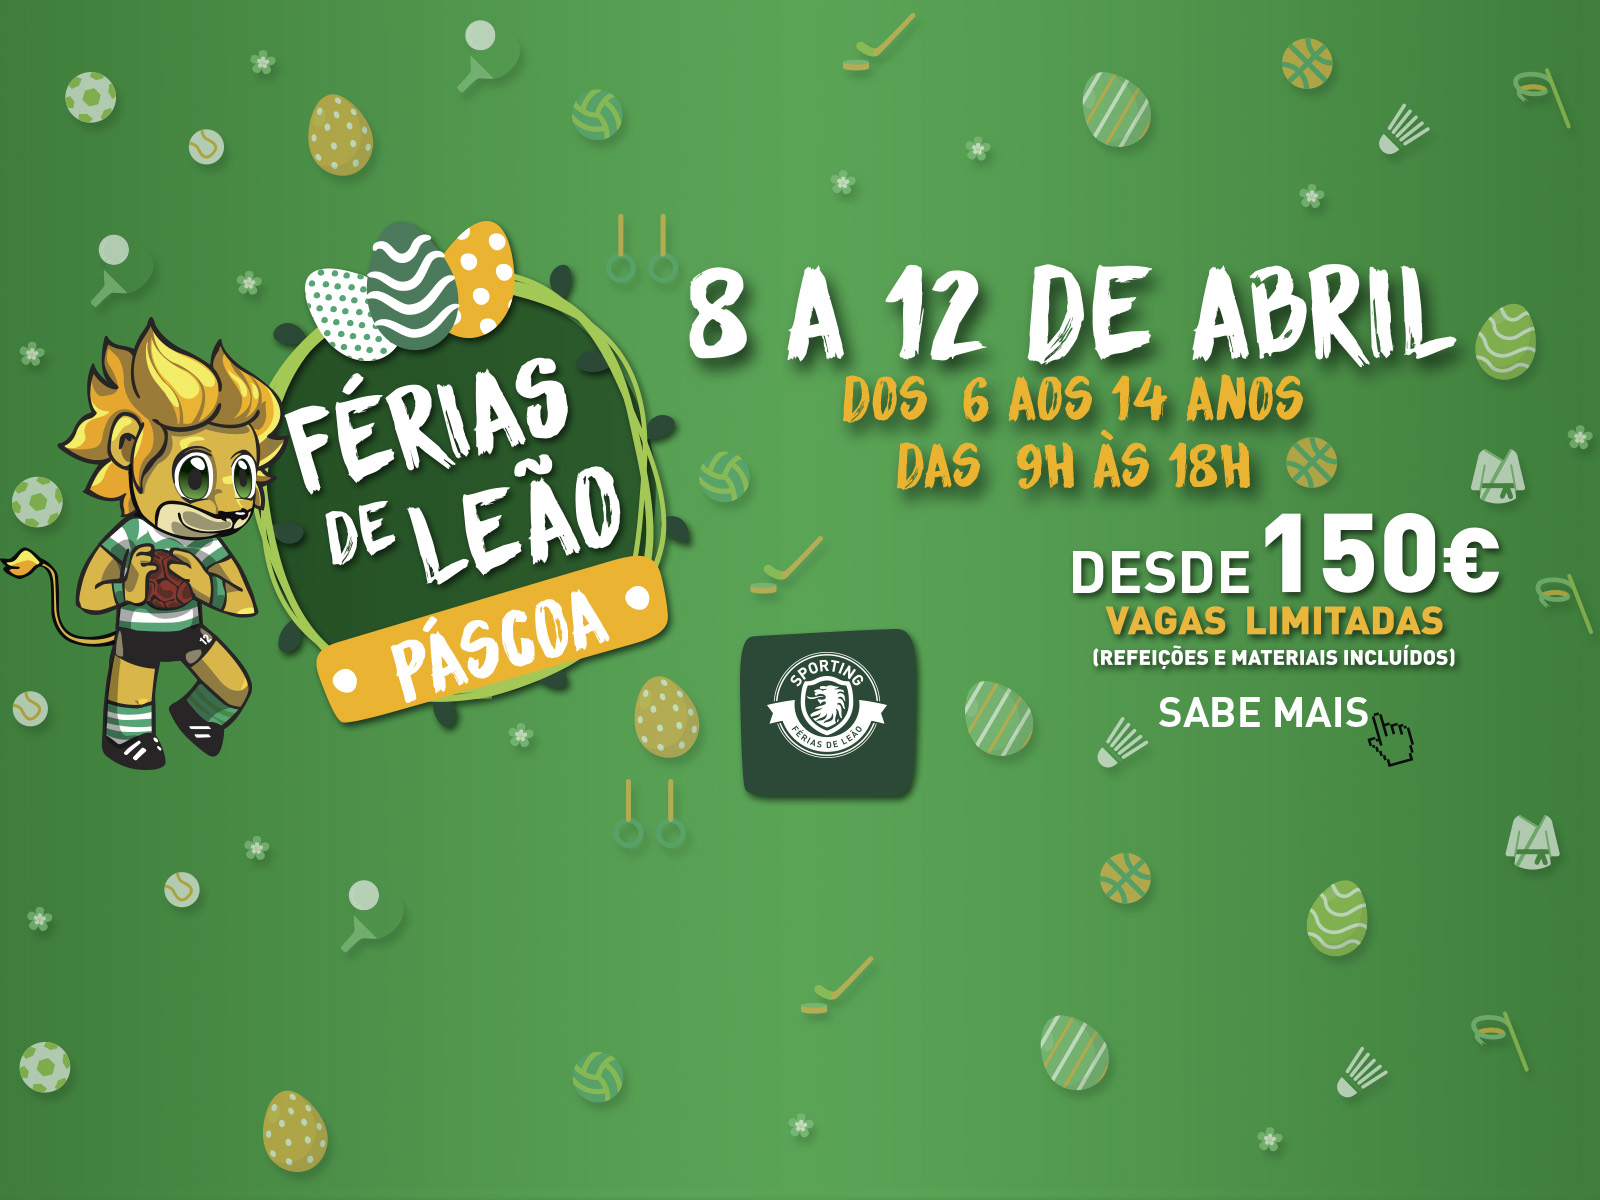 https://scpconteudos.pt/sites/default/files/revslider/image/Banner_HomePage_ferias%20leao.jpg